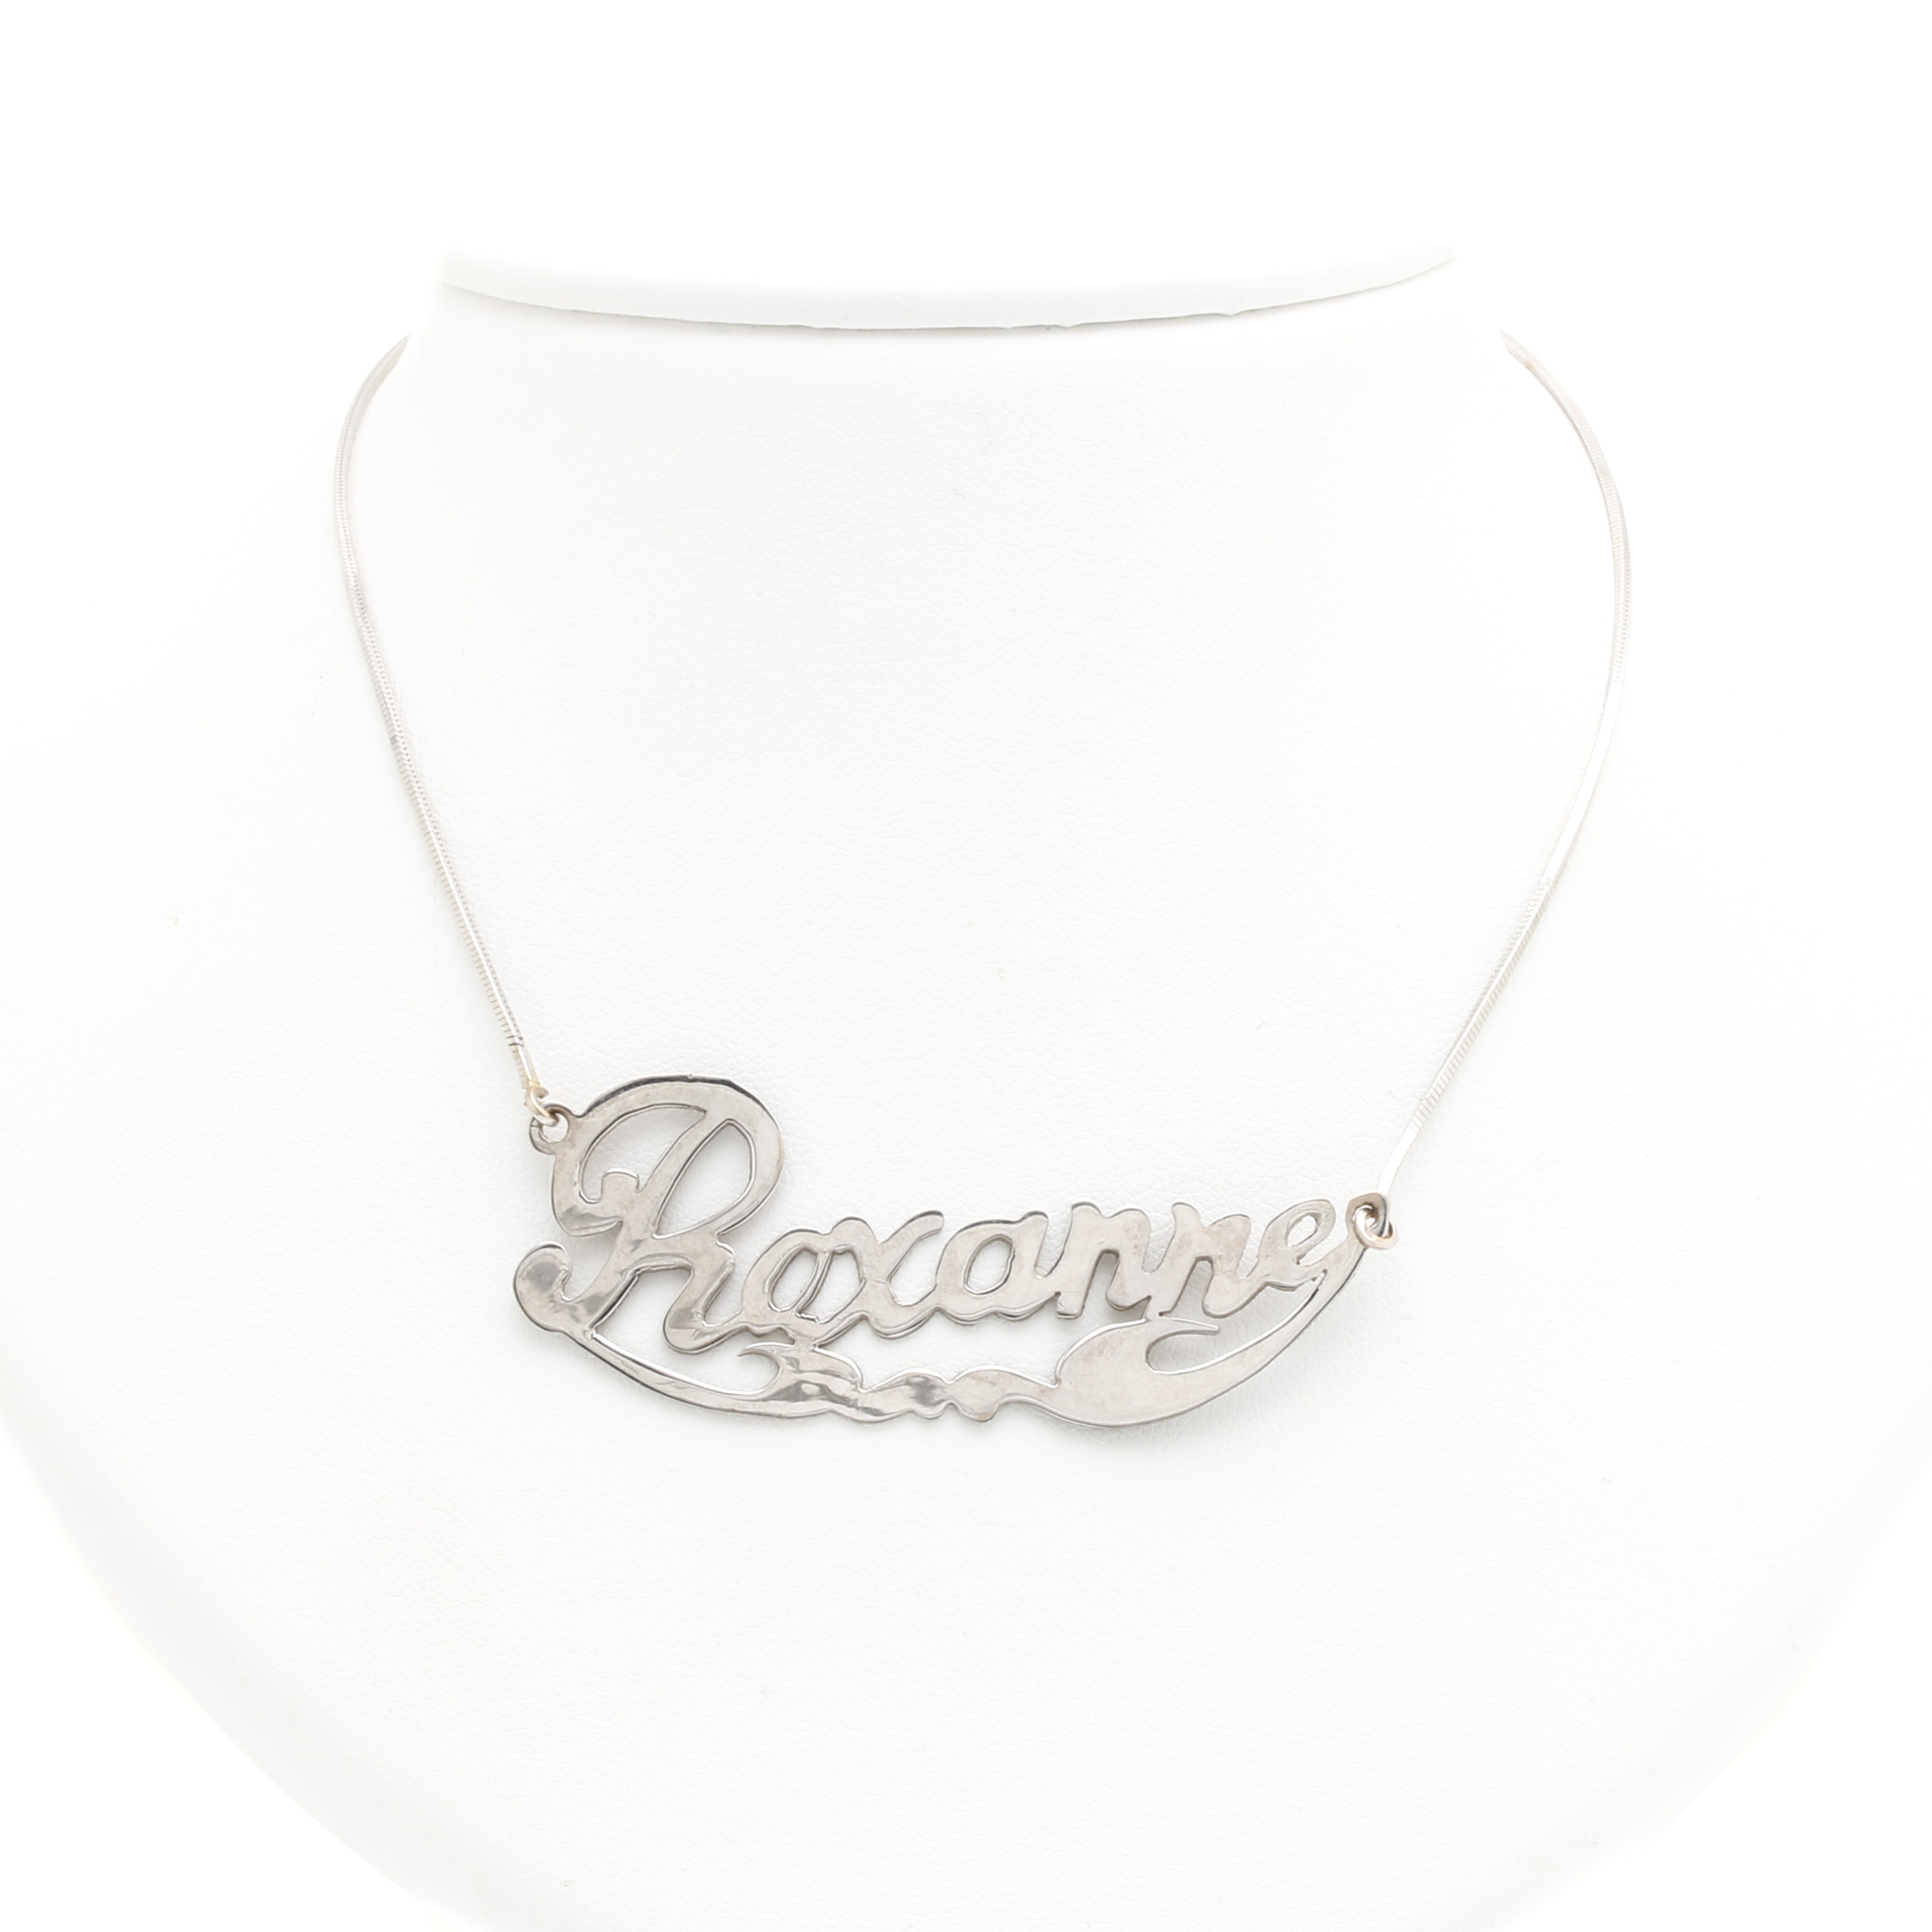 18K White Gold Name Pendant Necklace